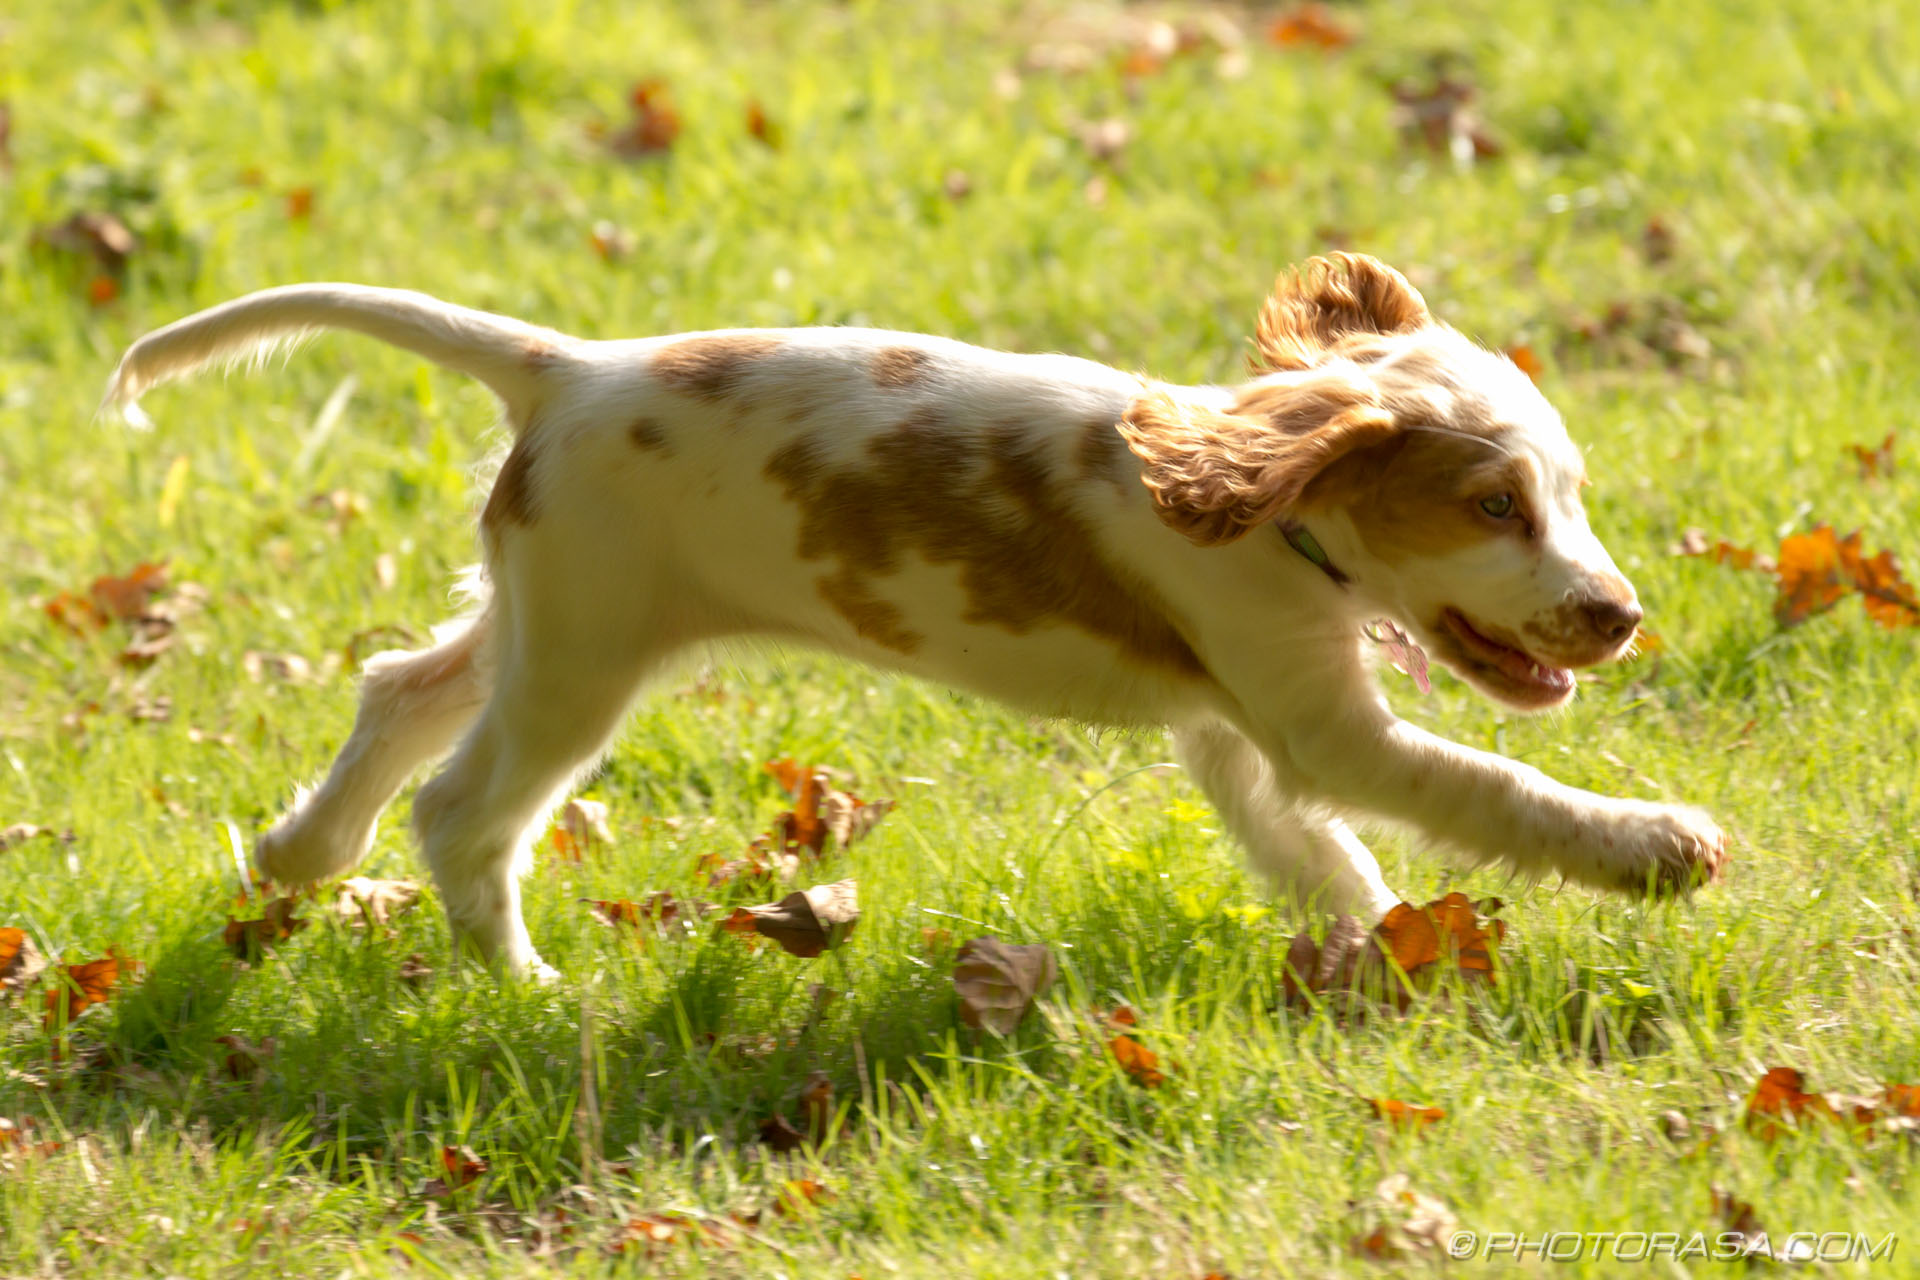 https://photorasa.com/spaniel-puppy-playing-sun/puppy-galloping/